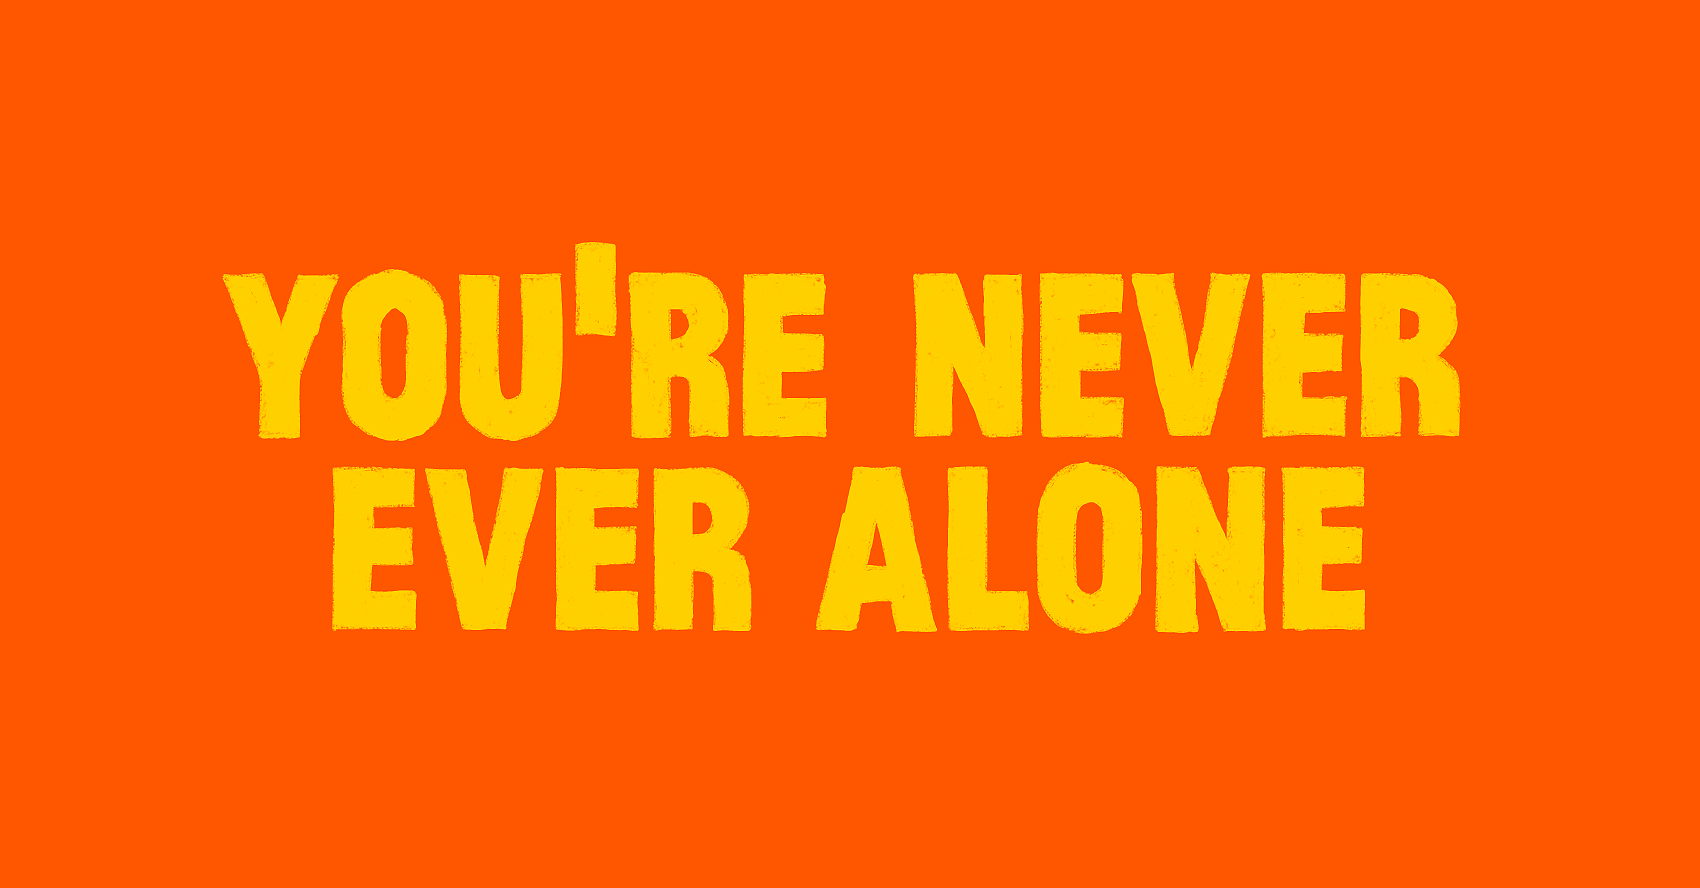 Mental Health Youre Never Alone